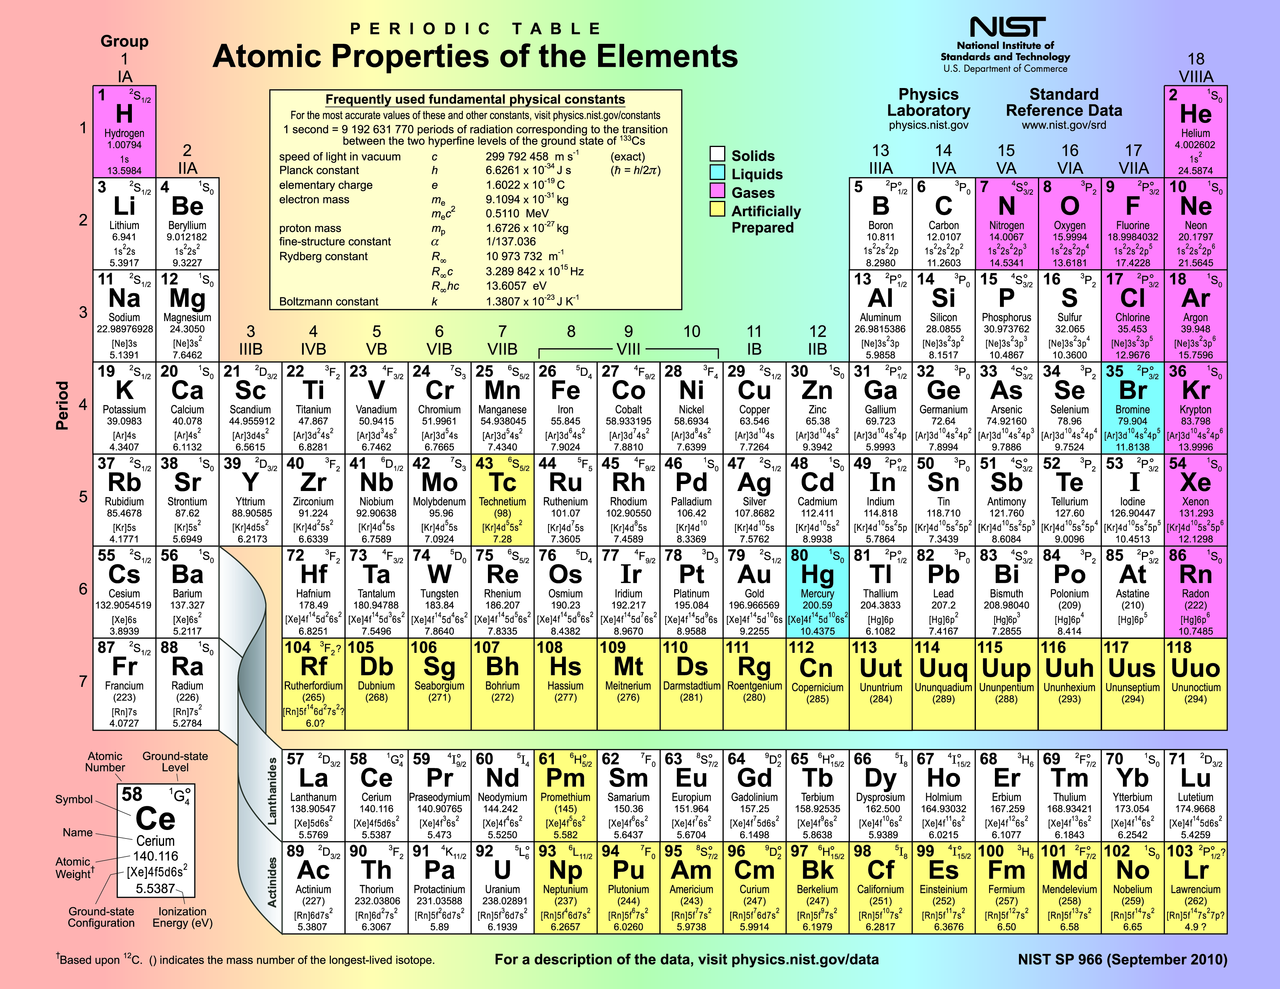 File Periodic Table Atomic Properties Of The Elements Png